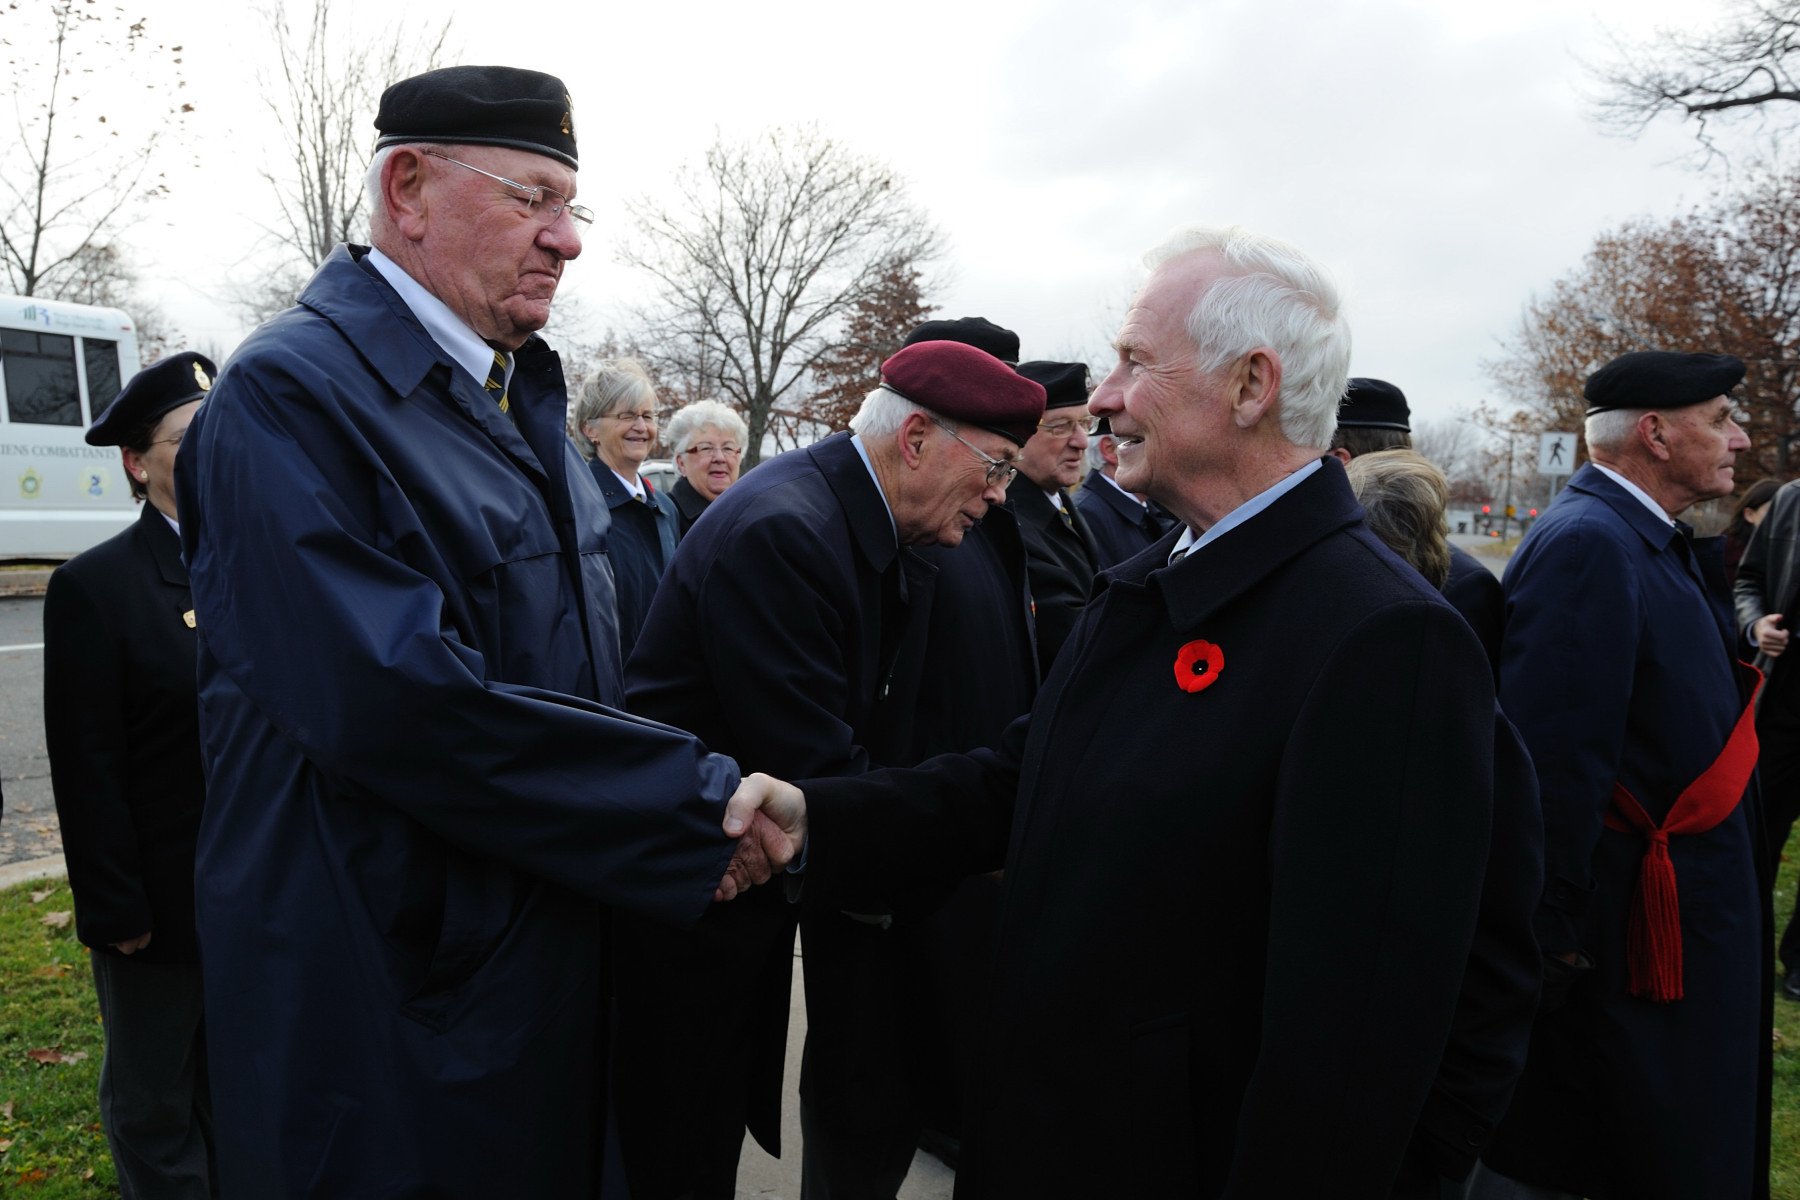 His Excellency also took the opportunity to meet and speak with veterans who were on site.